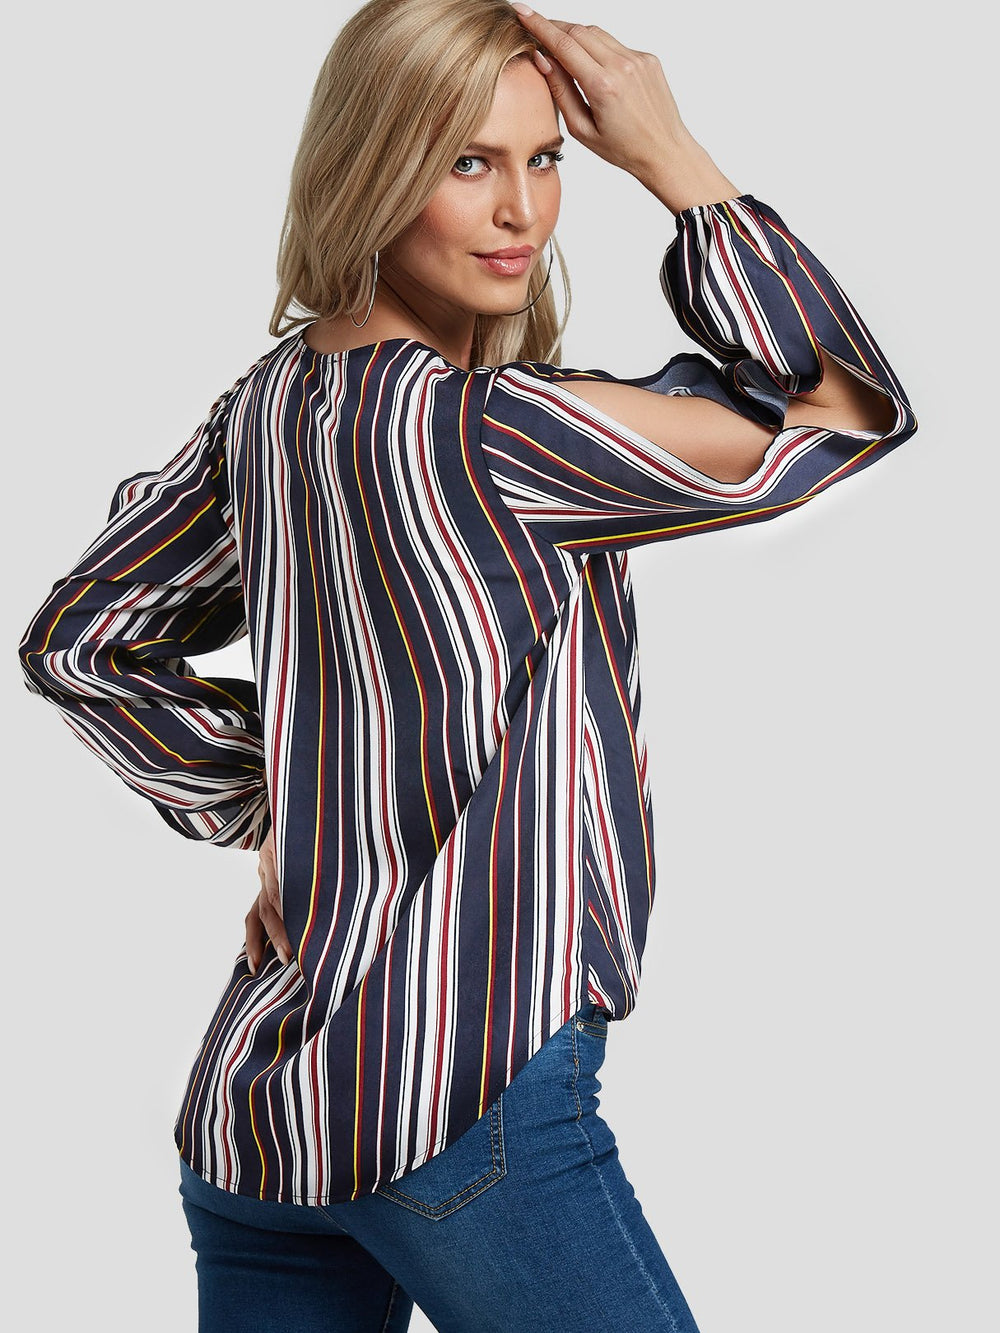 Womens Striped Blouses